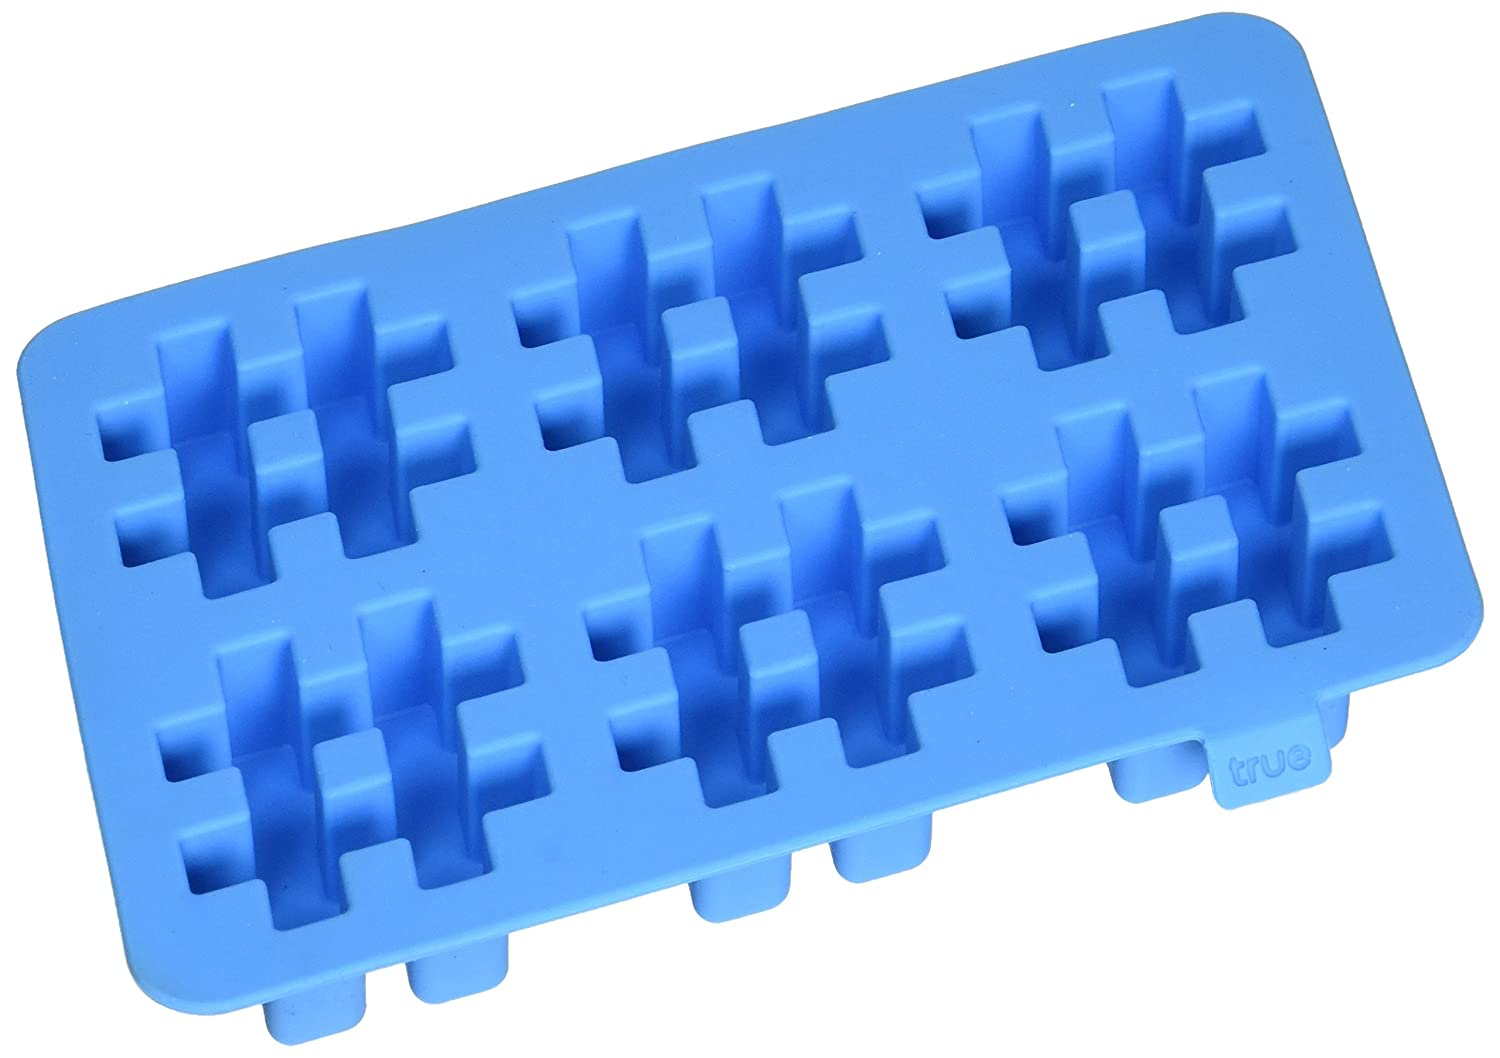 TrueZoo 3341 6.75 Inch Silicone #Pound It Blue Ice Cube Tray True Fabrication